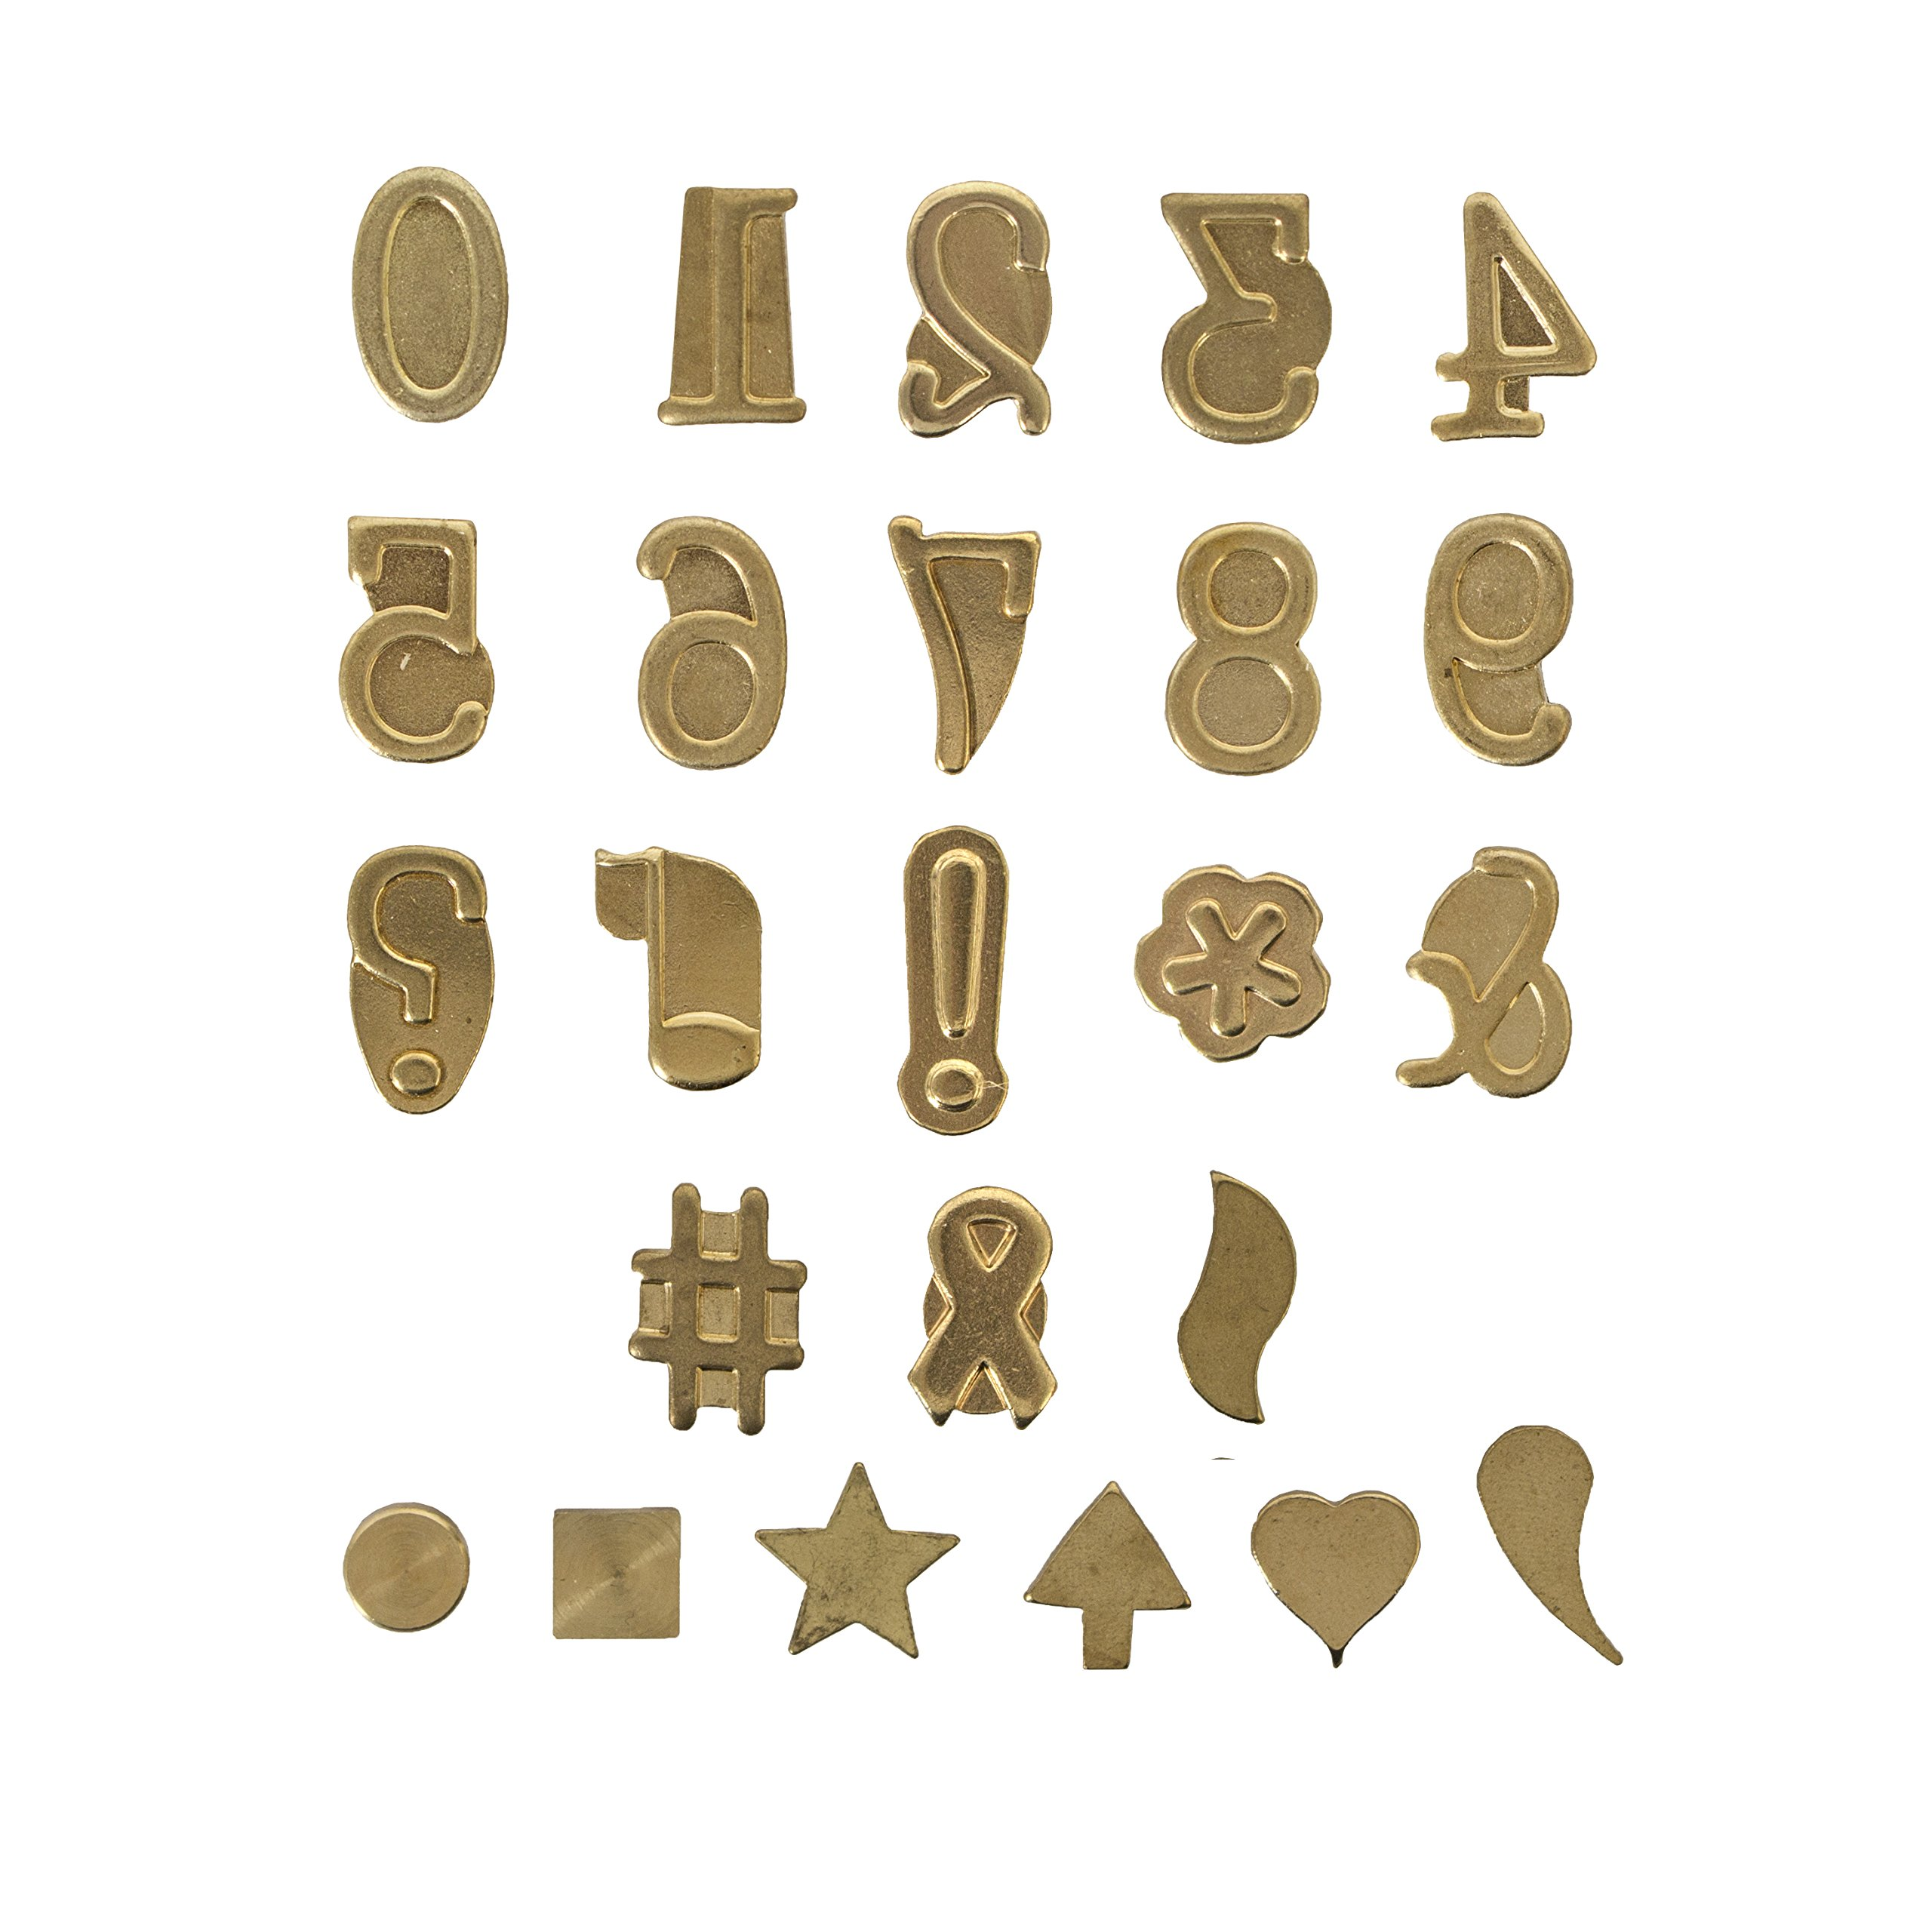 Walnut Hollow Hotstamps Number and Symbol 24 Piece Set for Branding and Personalization on Wood and Leather by Walnut Hollow